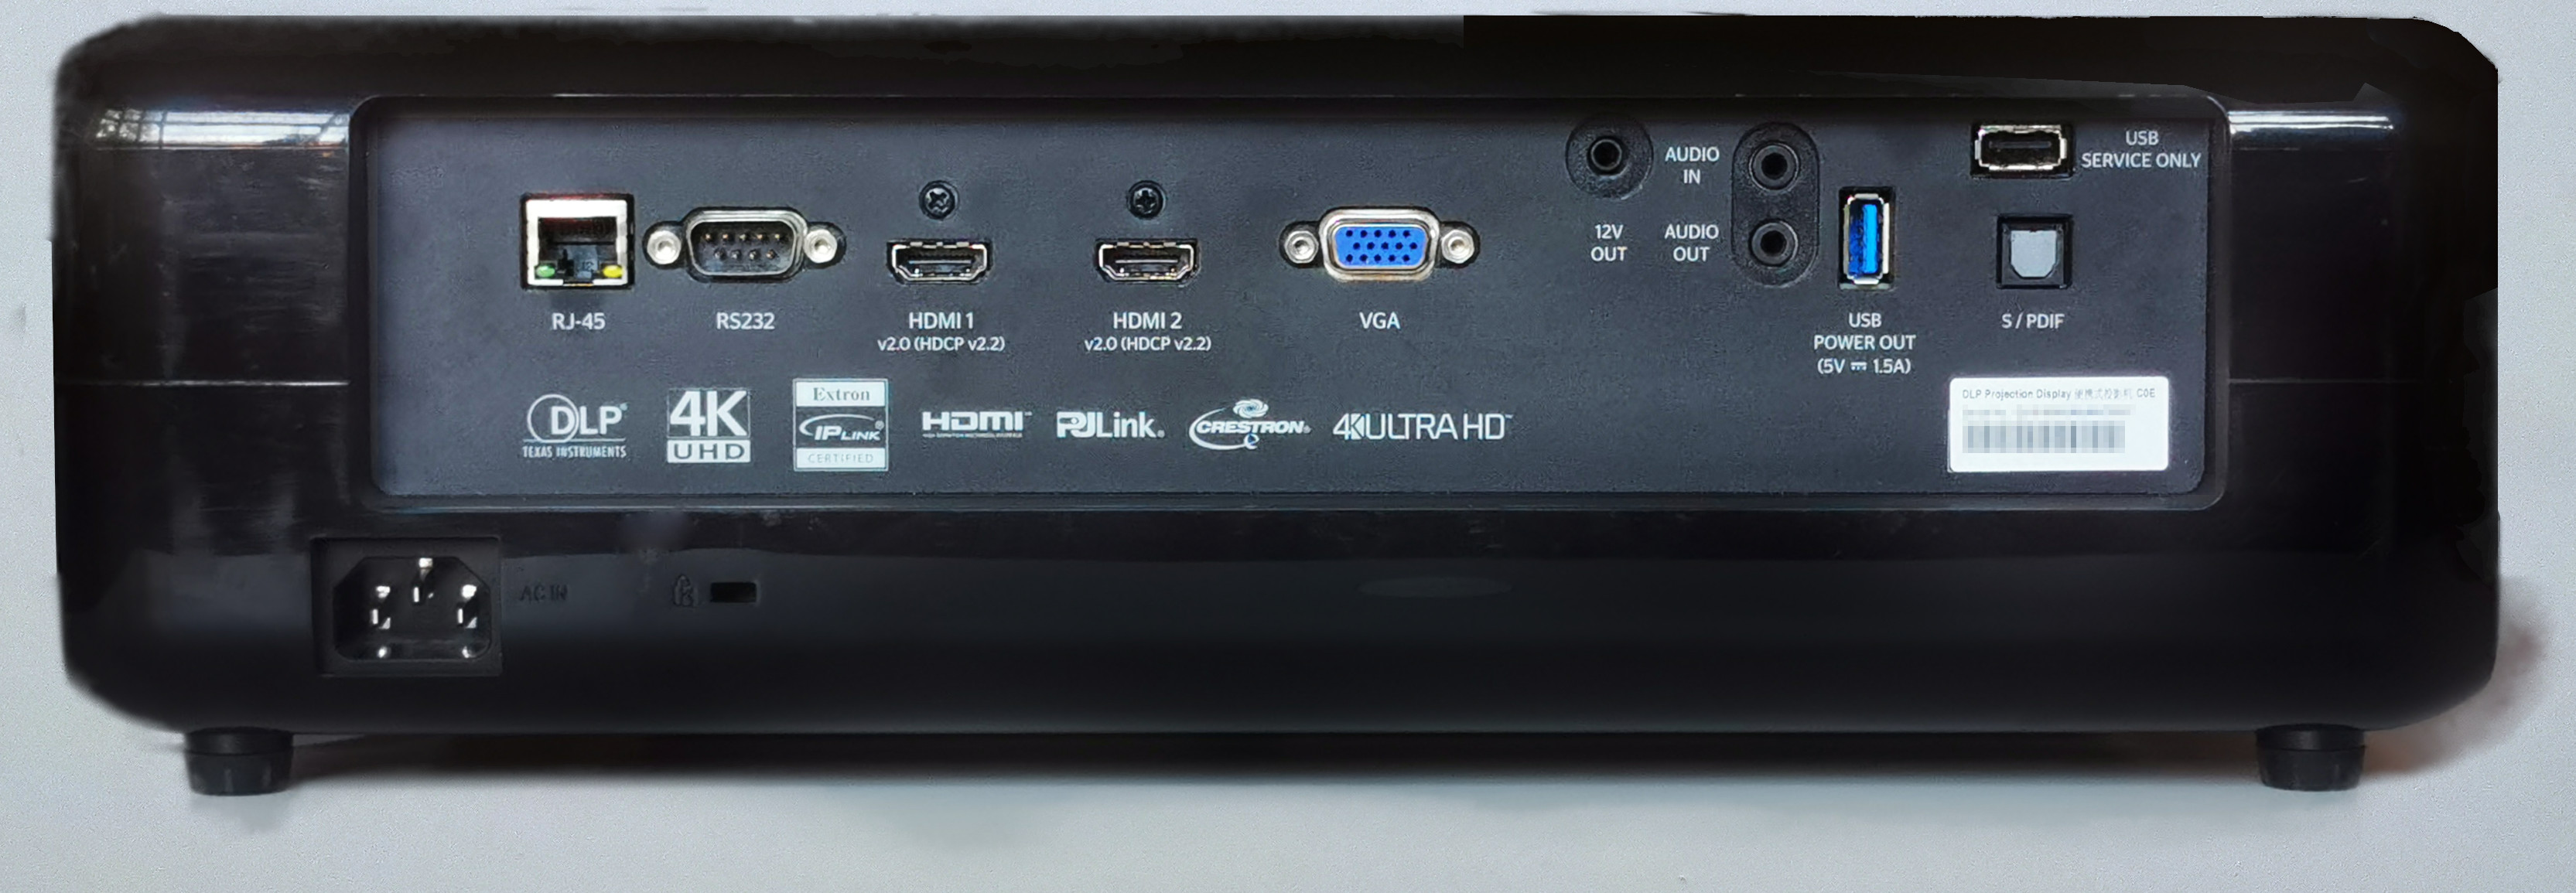 Optoma UHD51 rear connections